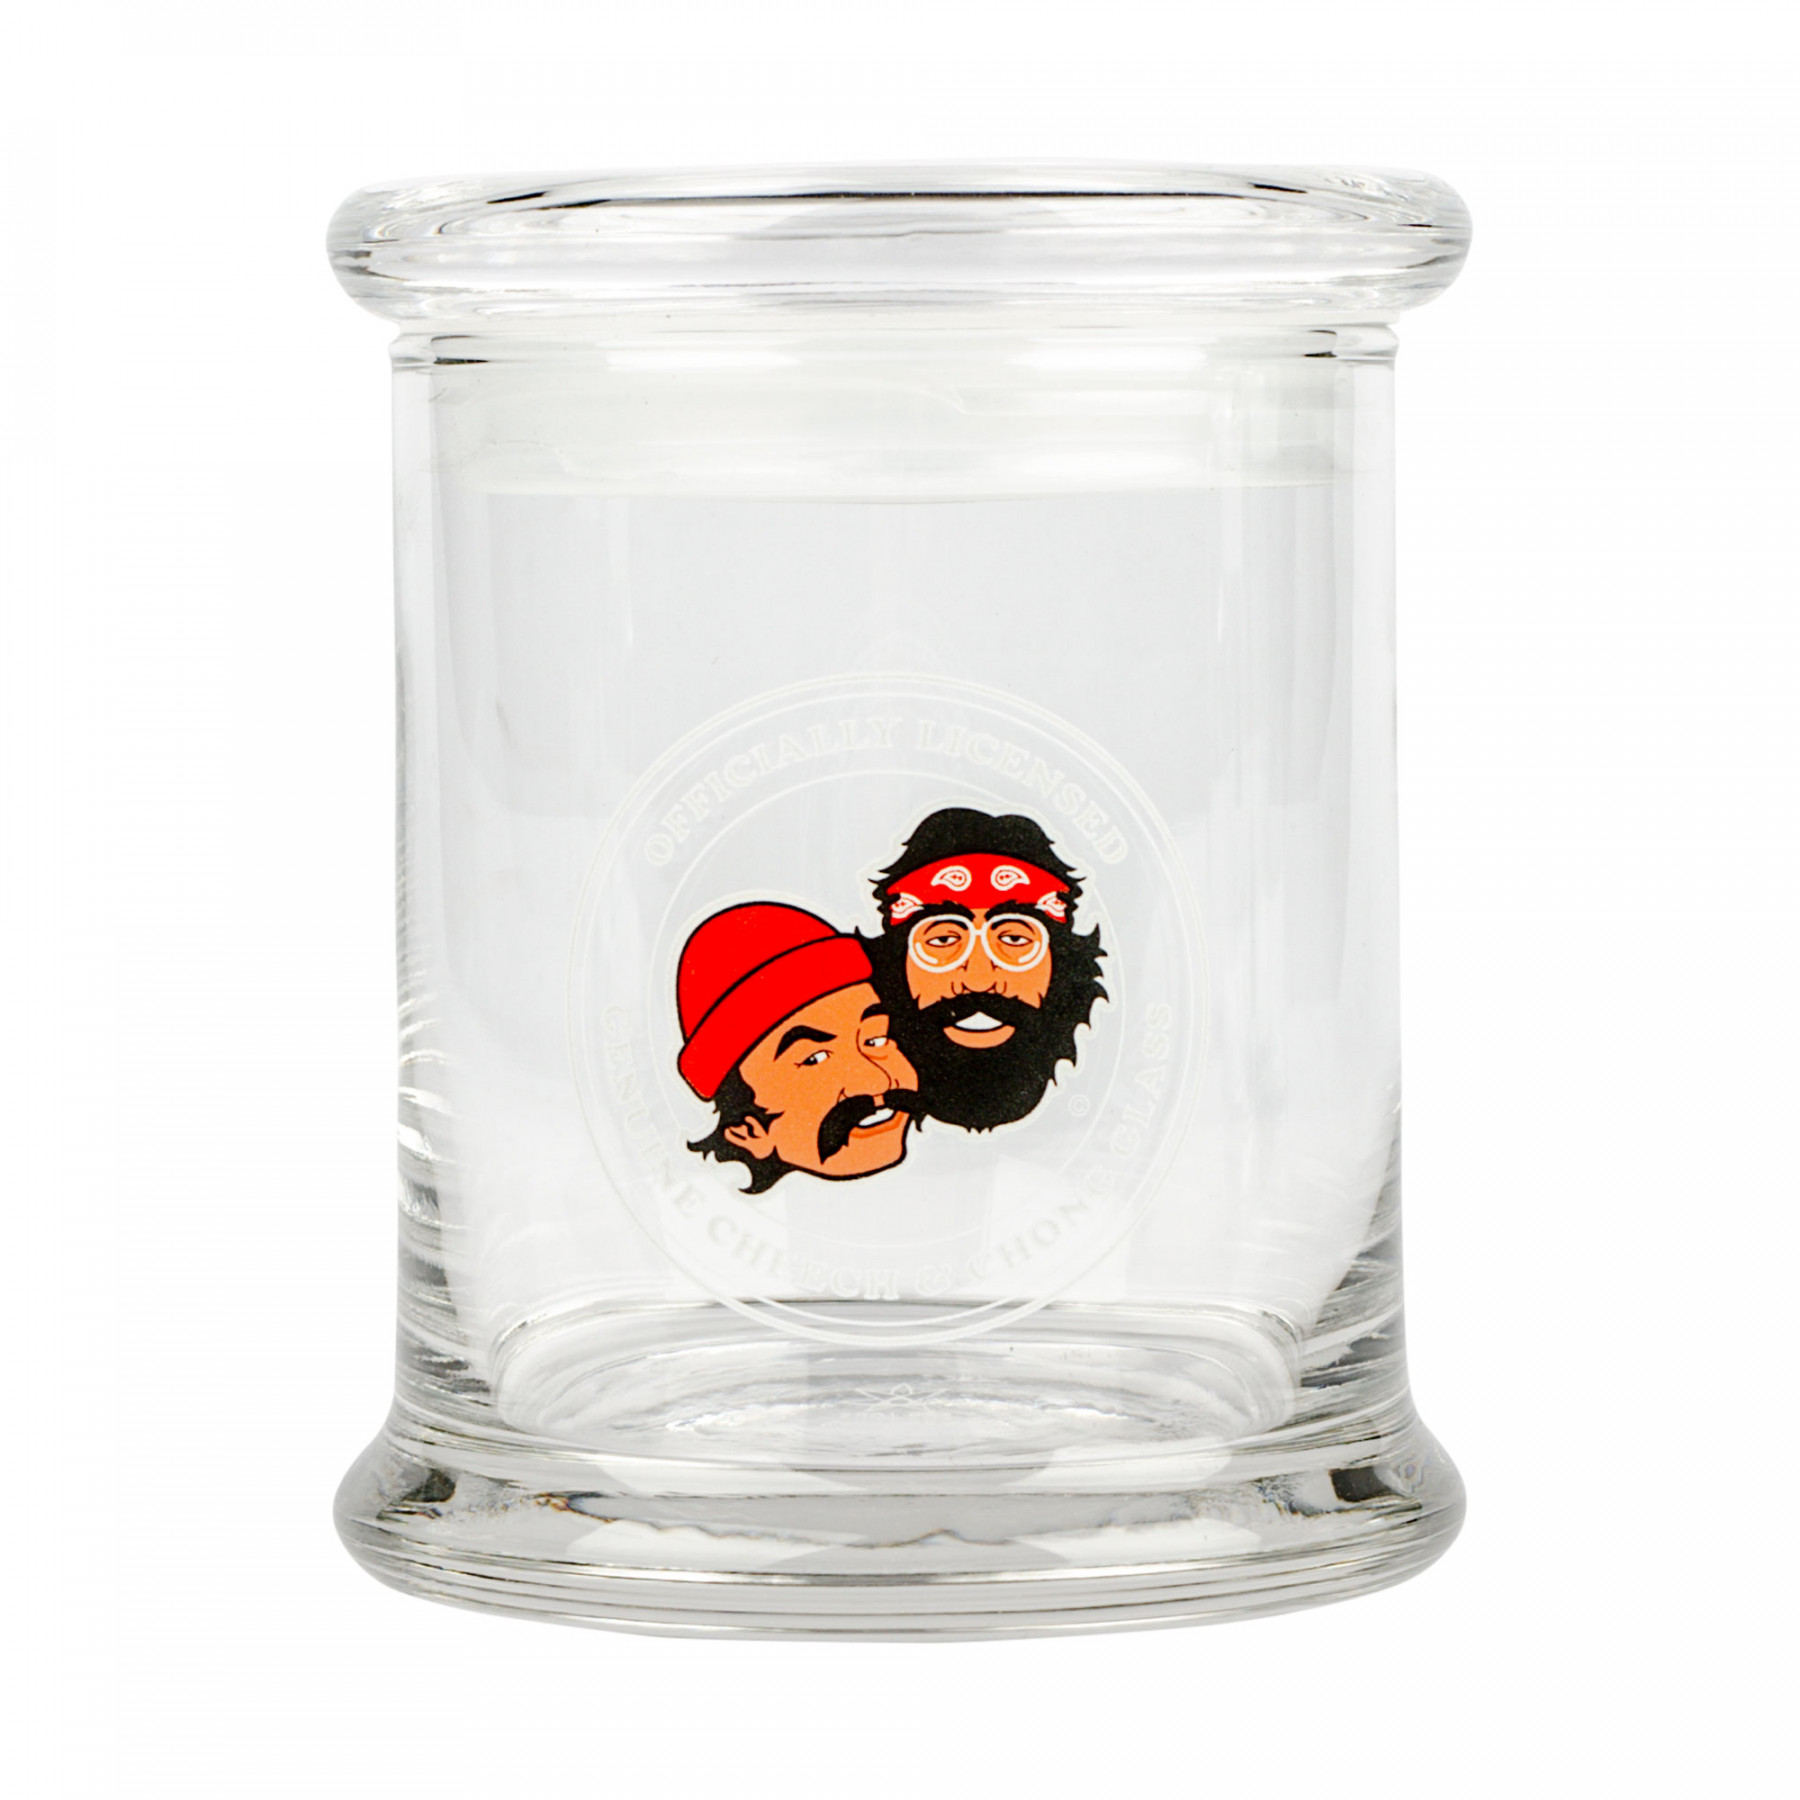 Cheech & Chong™ Glass Crest Pop Top Jar